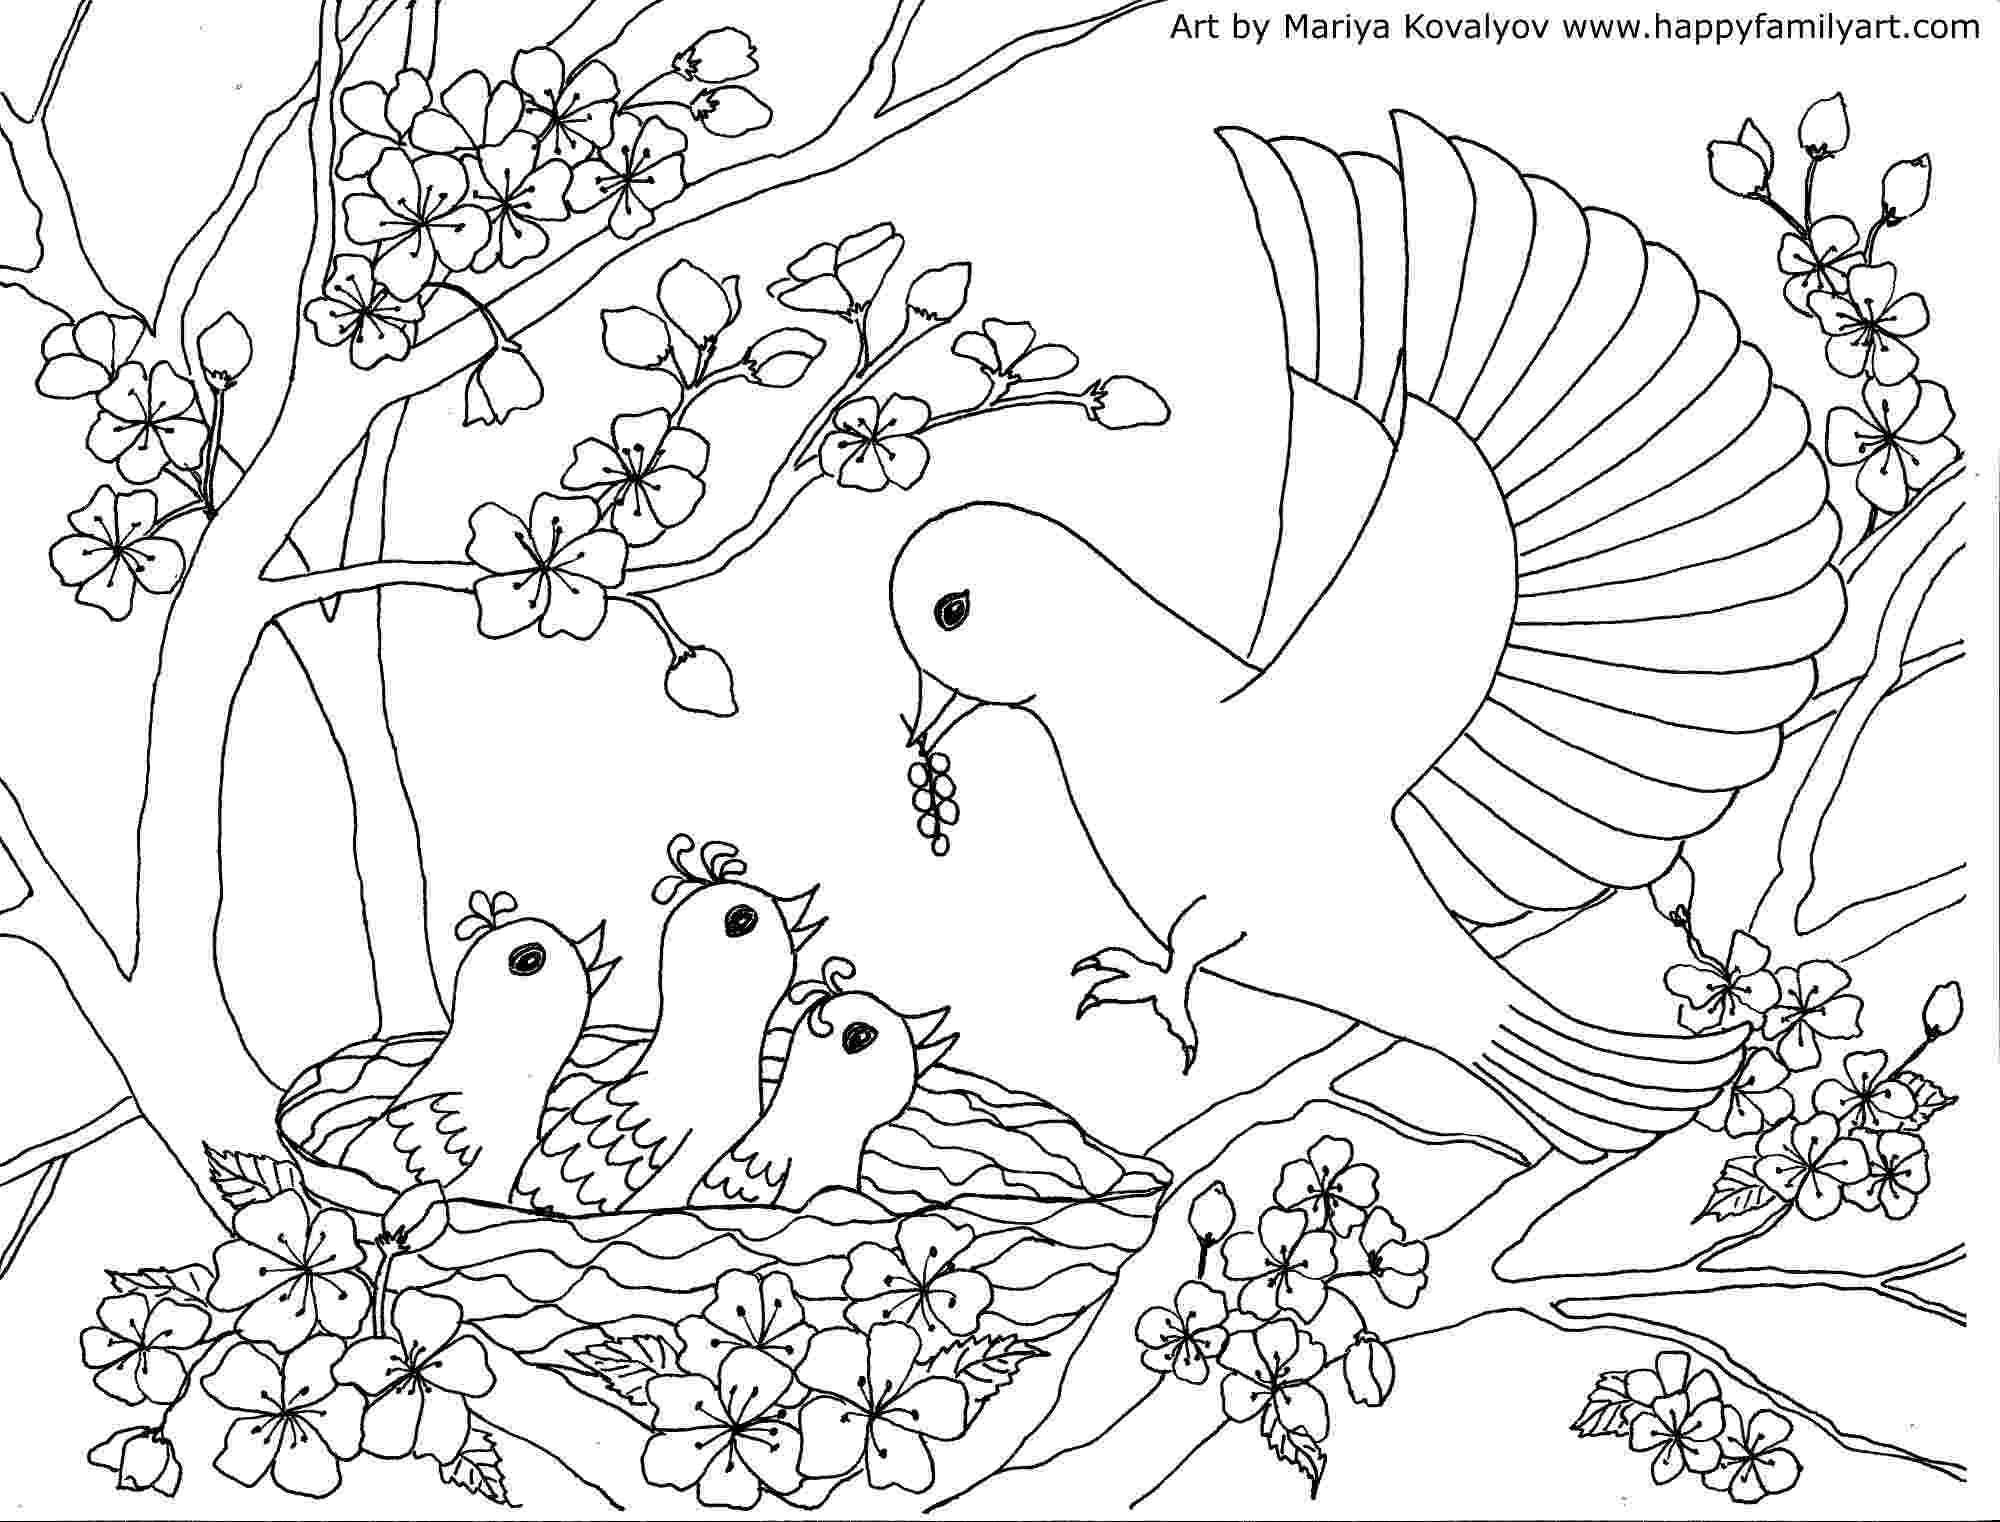 birds to color birds coloring page happy family art color birds to